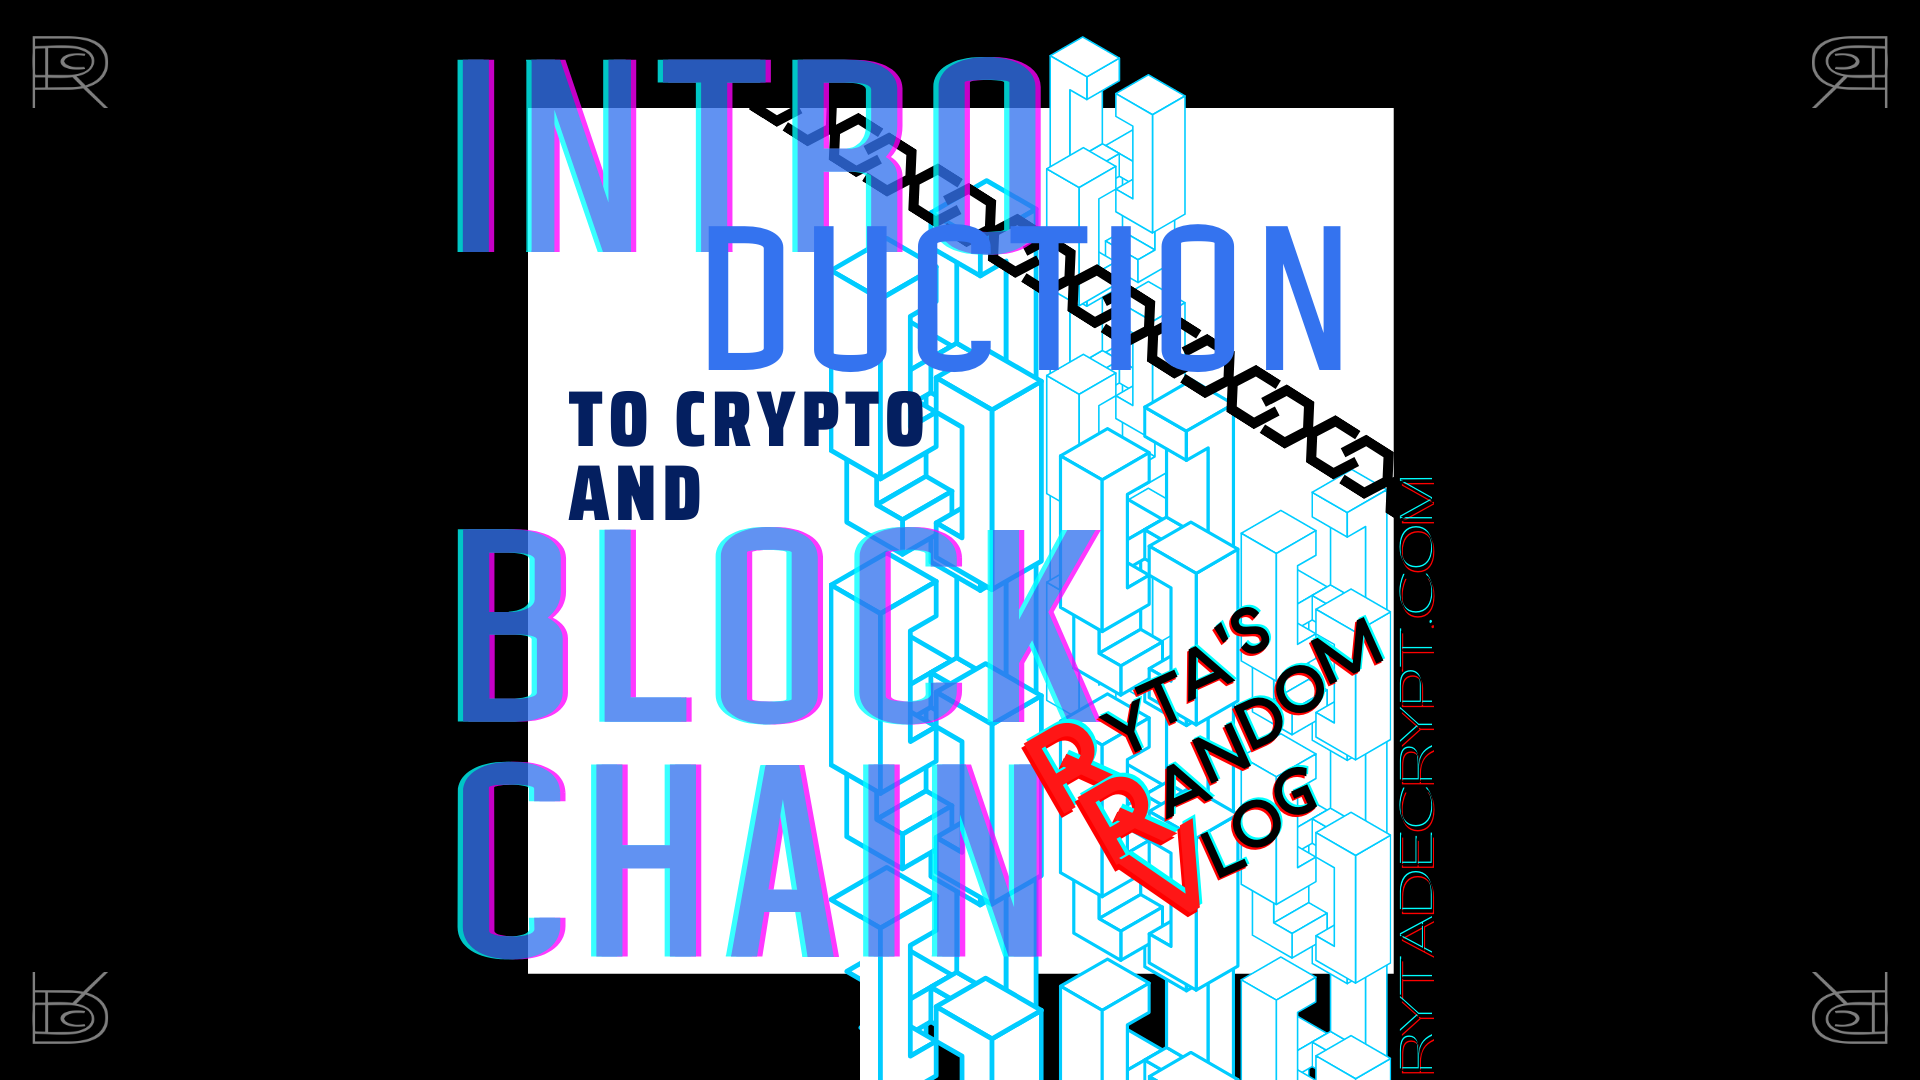 Introduction to Blockchain, Crypto, Decentralization, etc.?